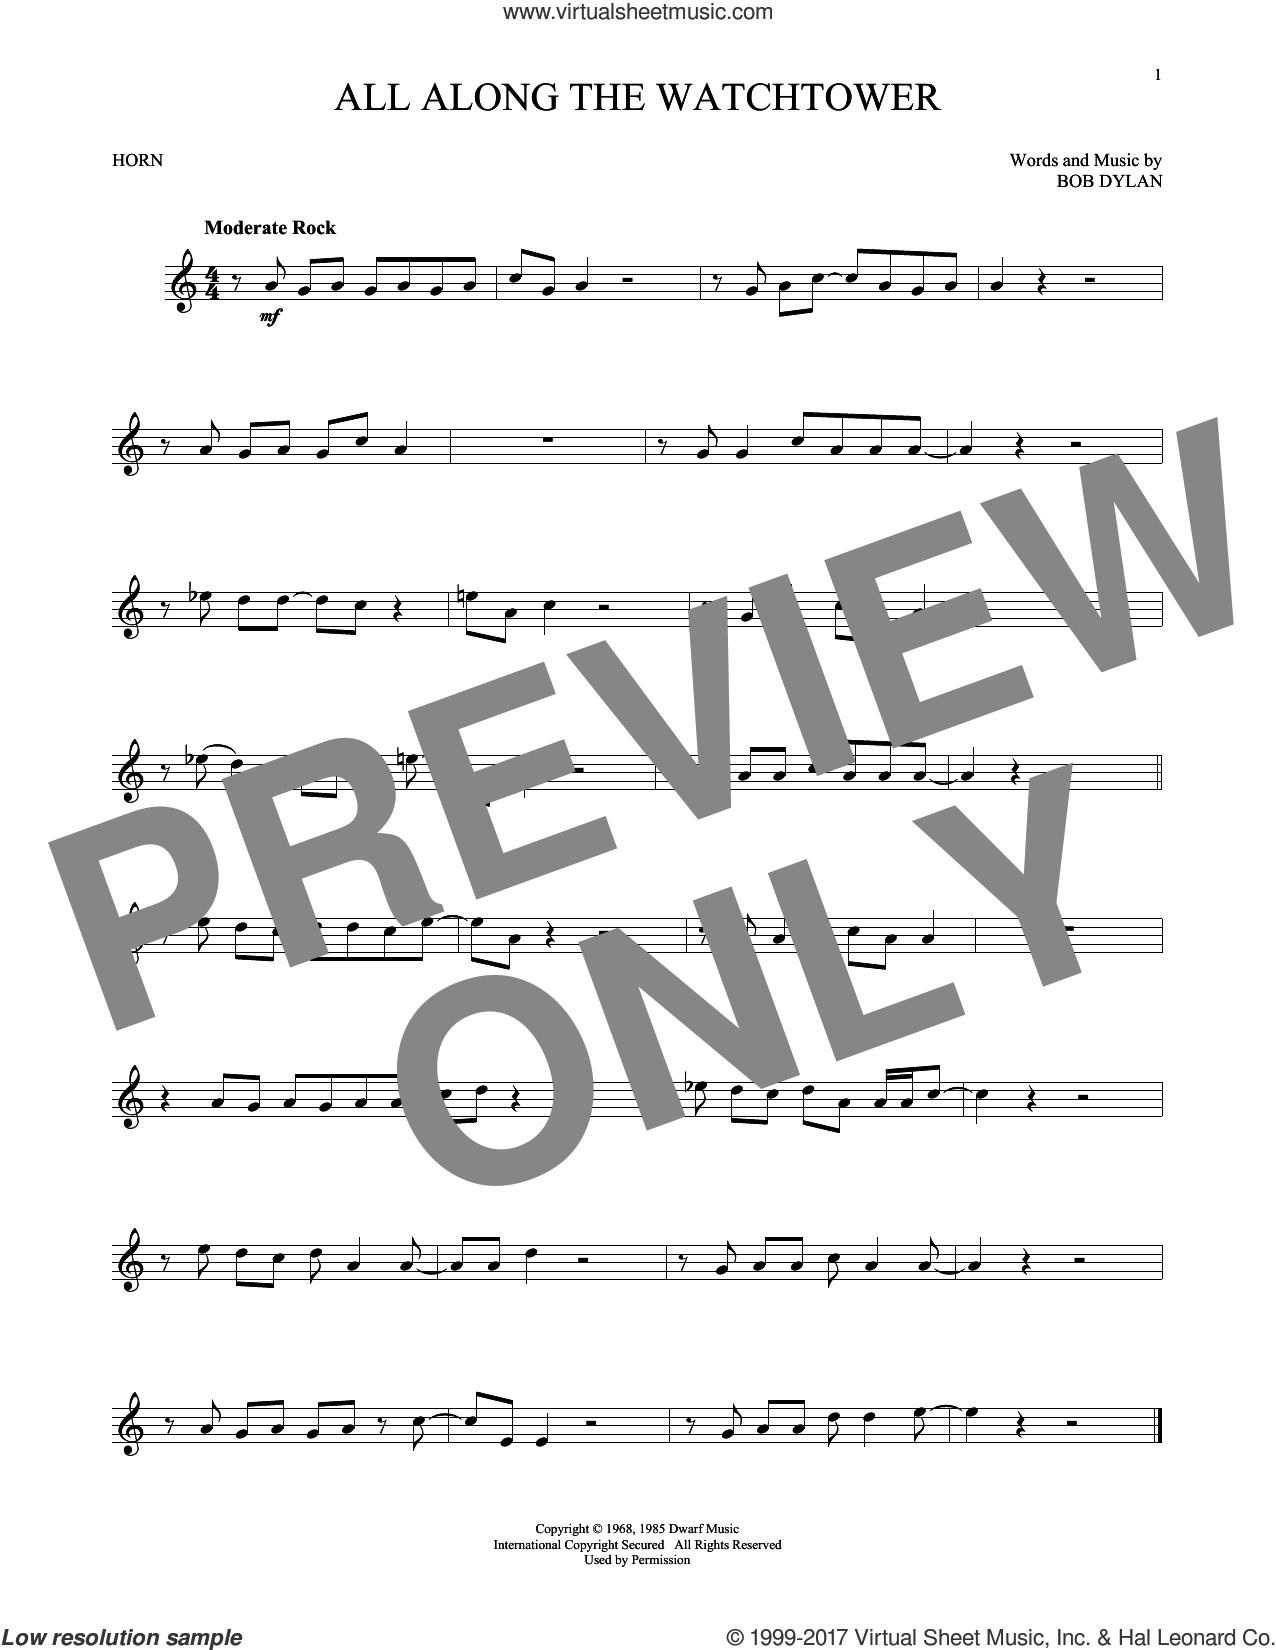 All Along The Watchtower sheet music for horn solo by Bob Dylan, intermediate skill level